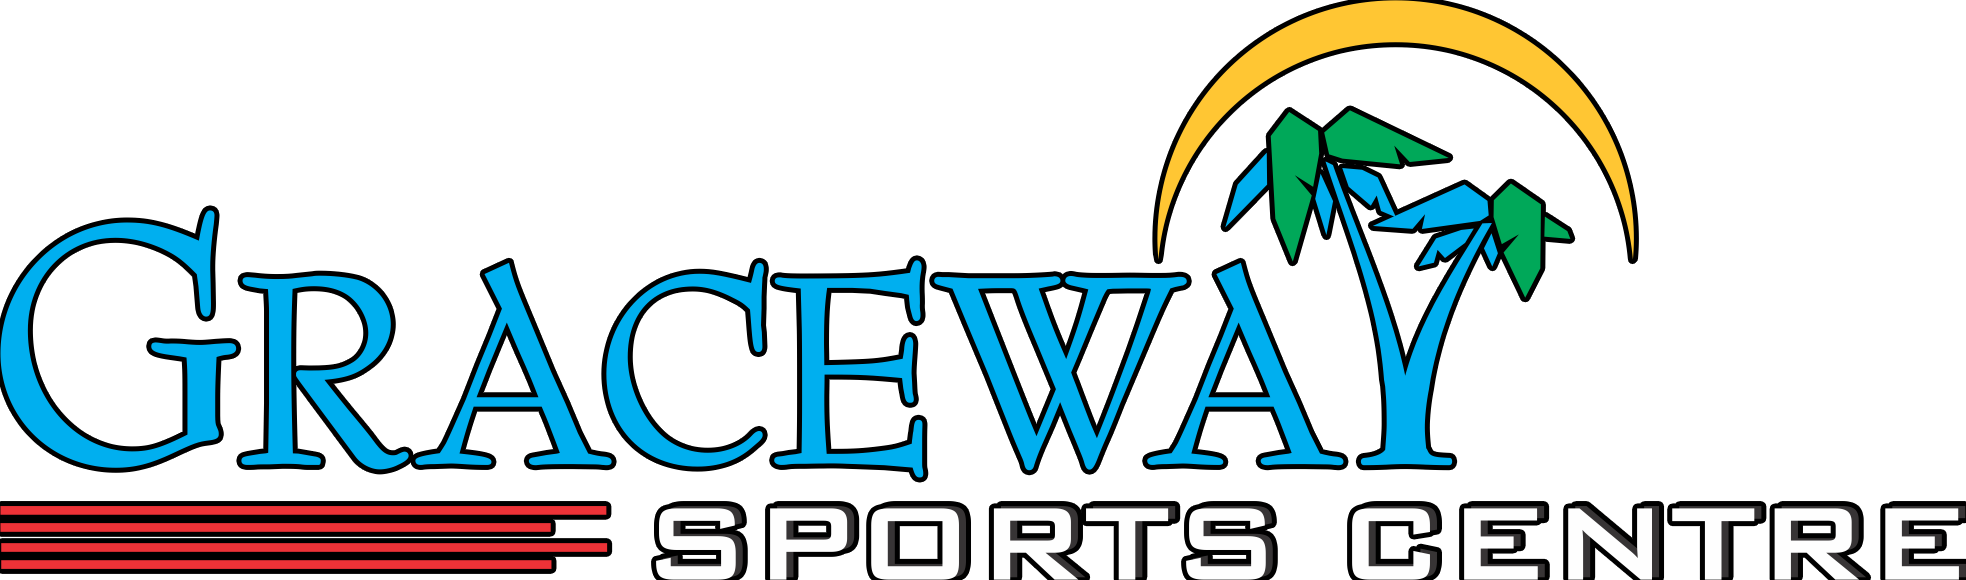 Upcoming Events | Men's Hockey | Graceway Sports Center